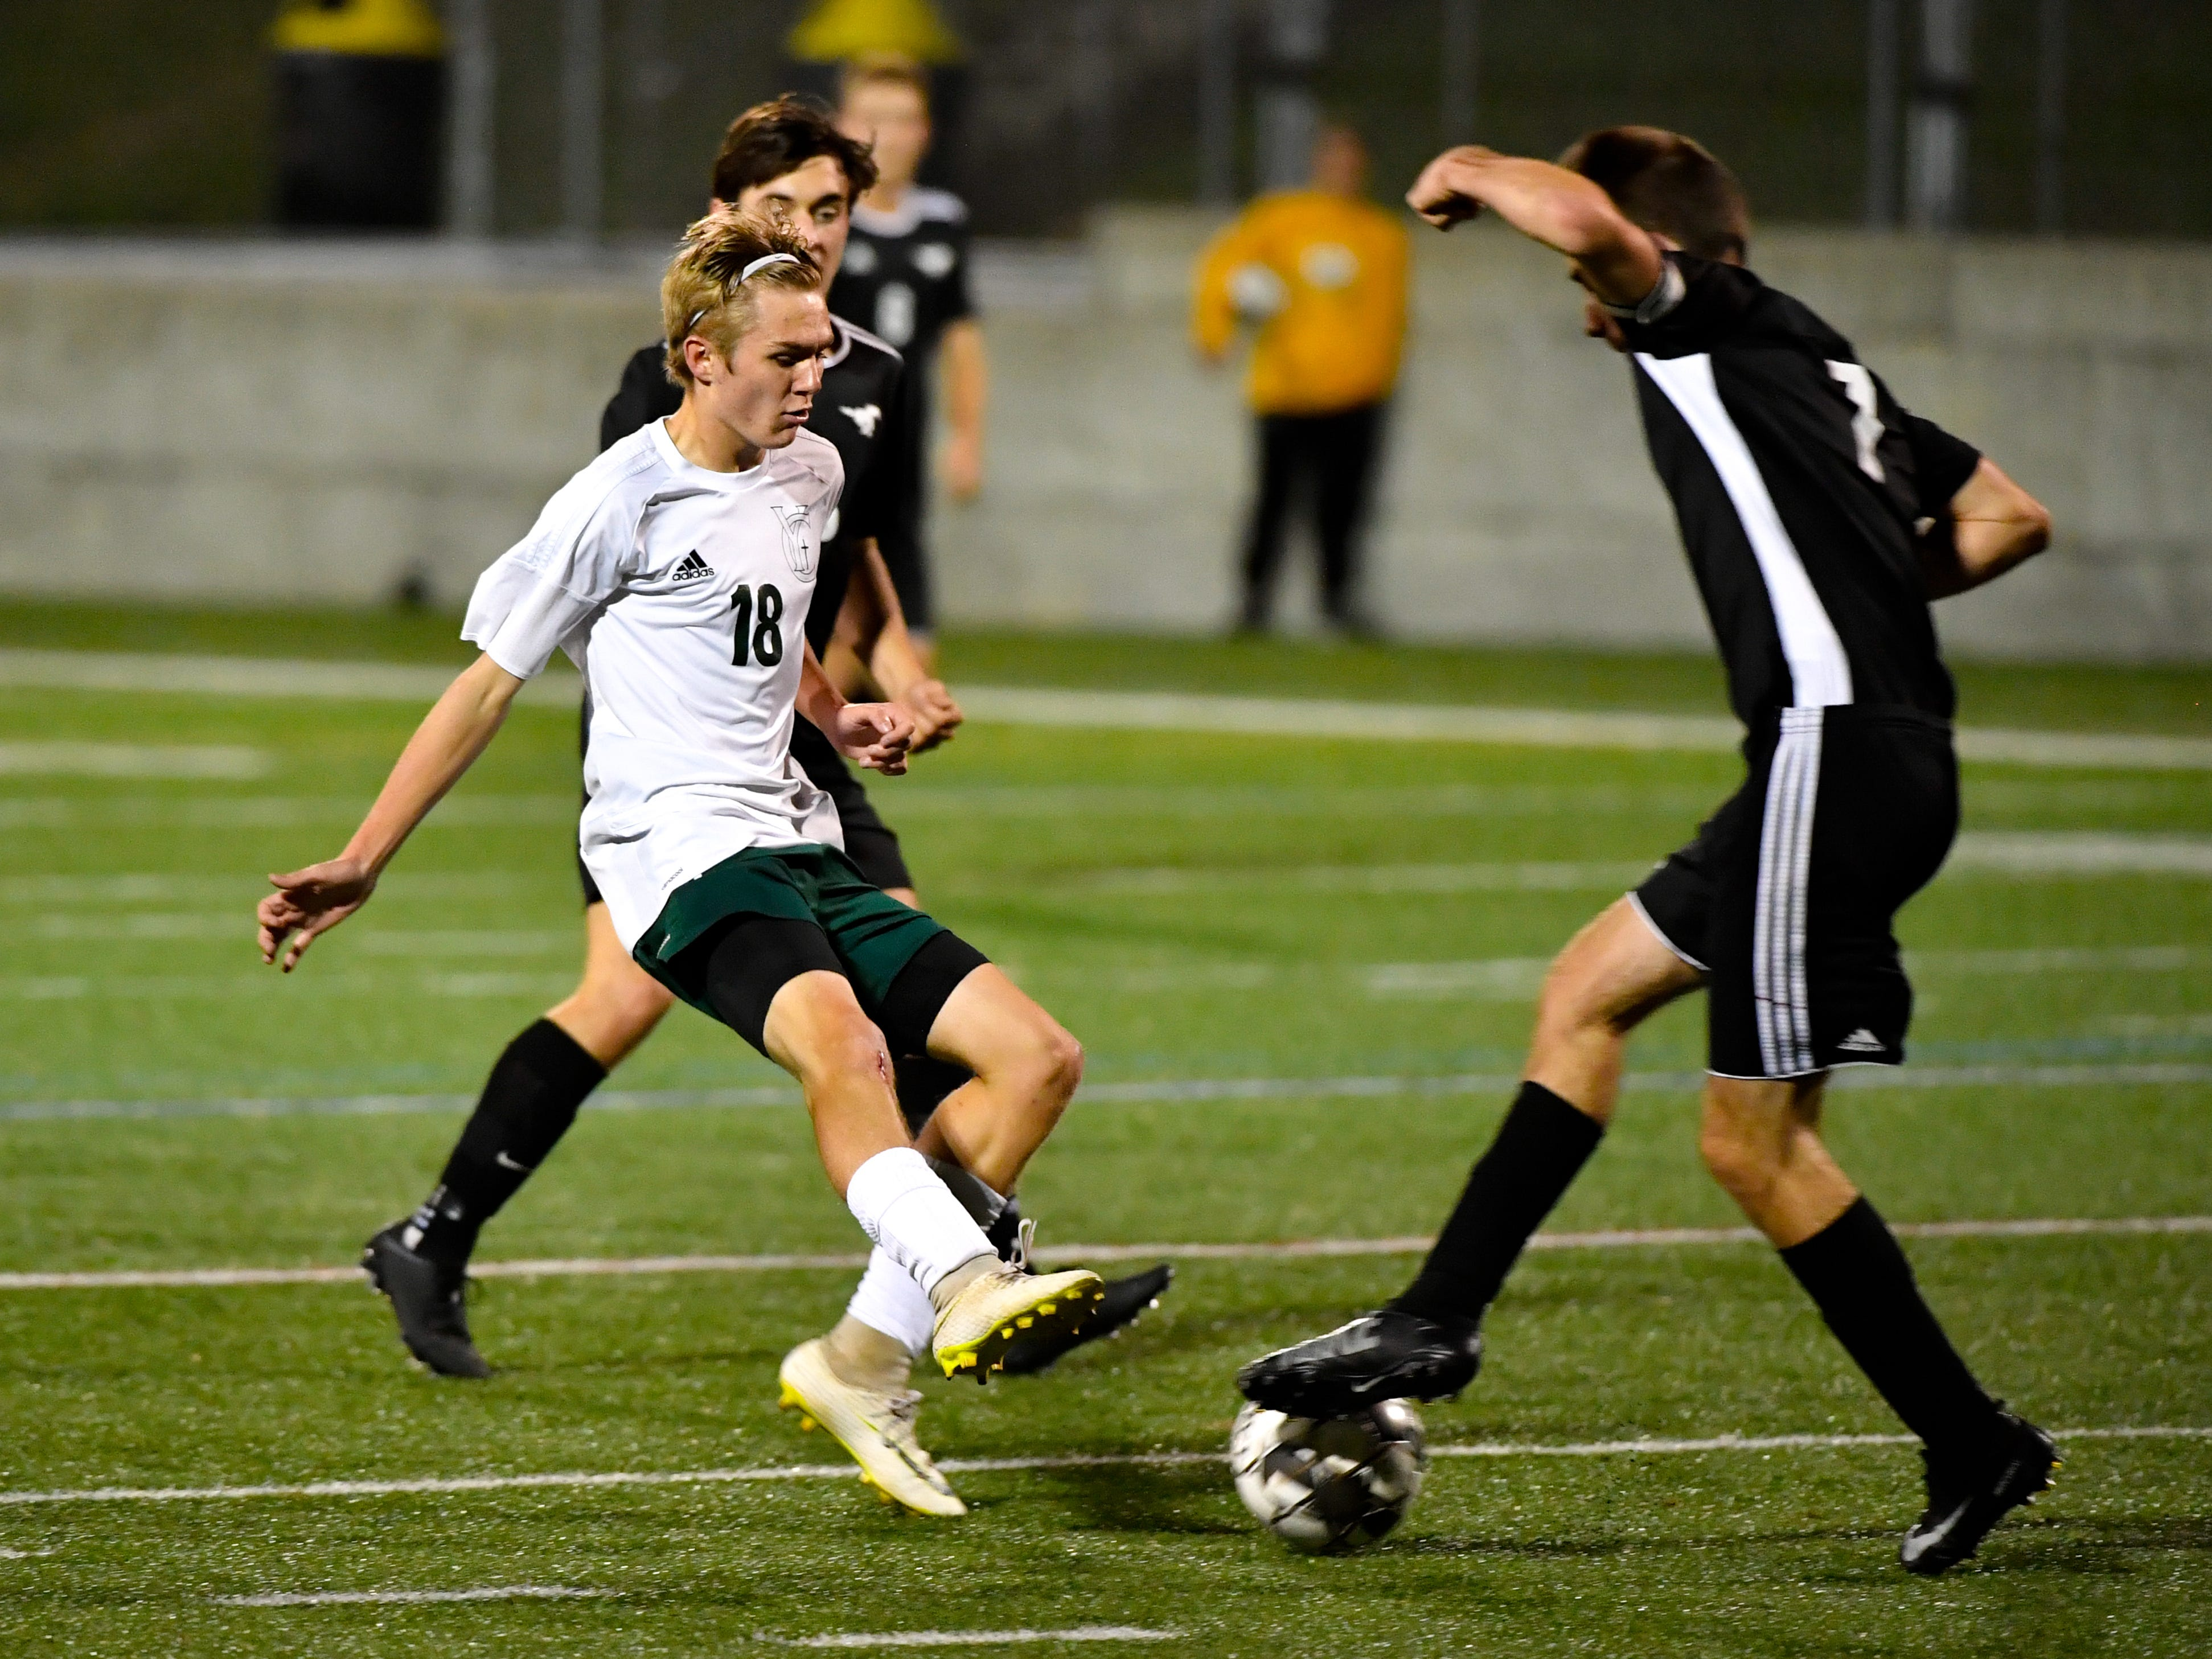 Ben Bullen (18) of York Catholic looks to steal the ball during the boys soccer game between South Western and York Catholic, October 16, 2018. The Mustangs beat the Irish 2-1.